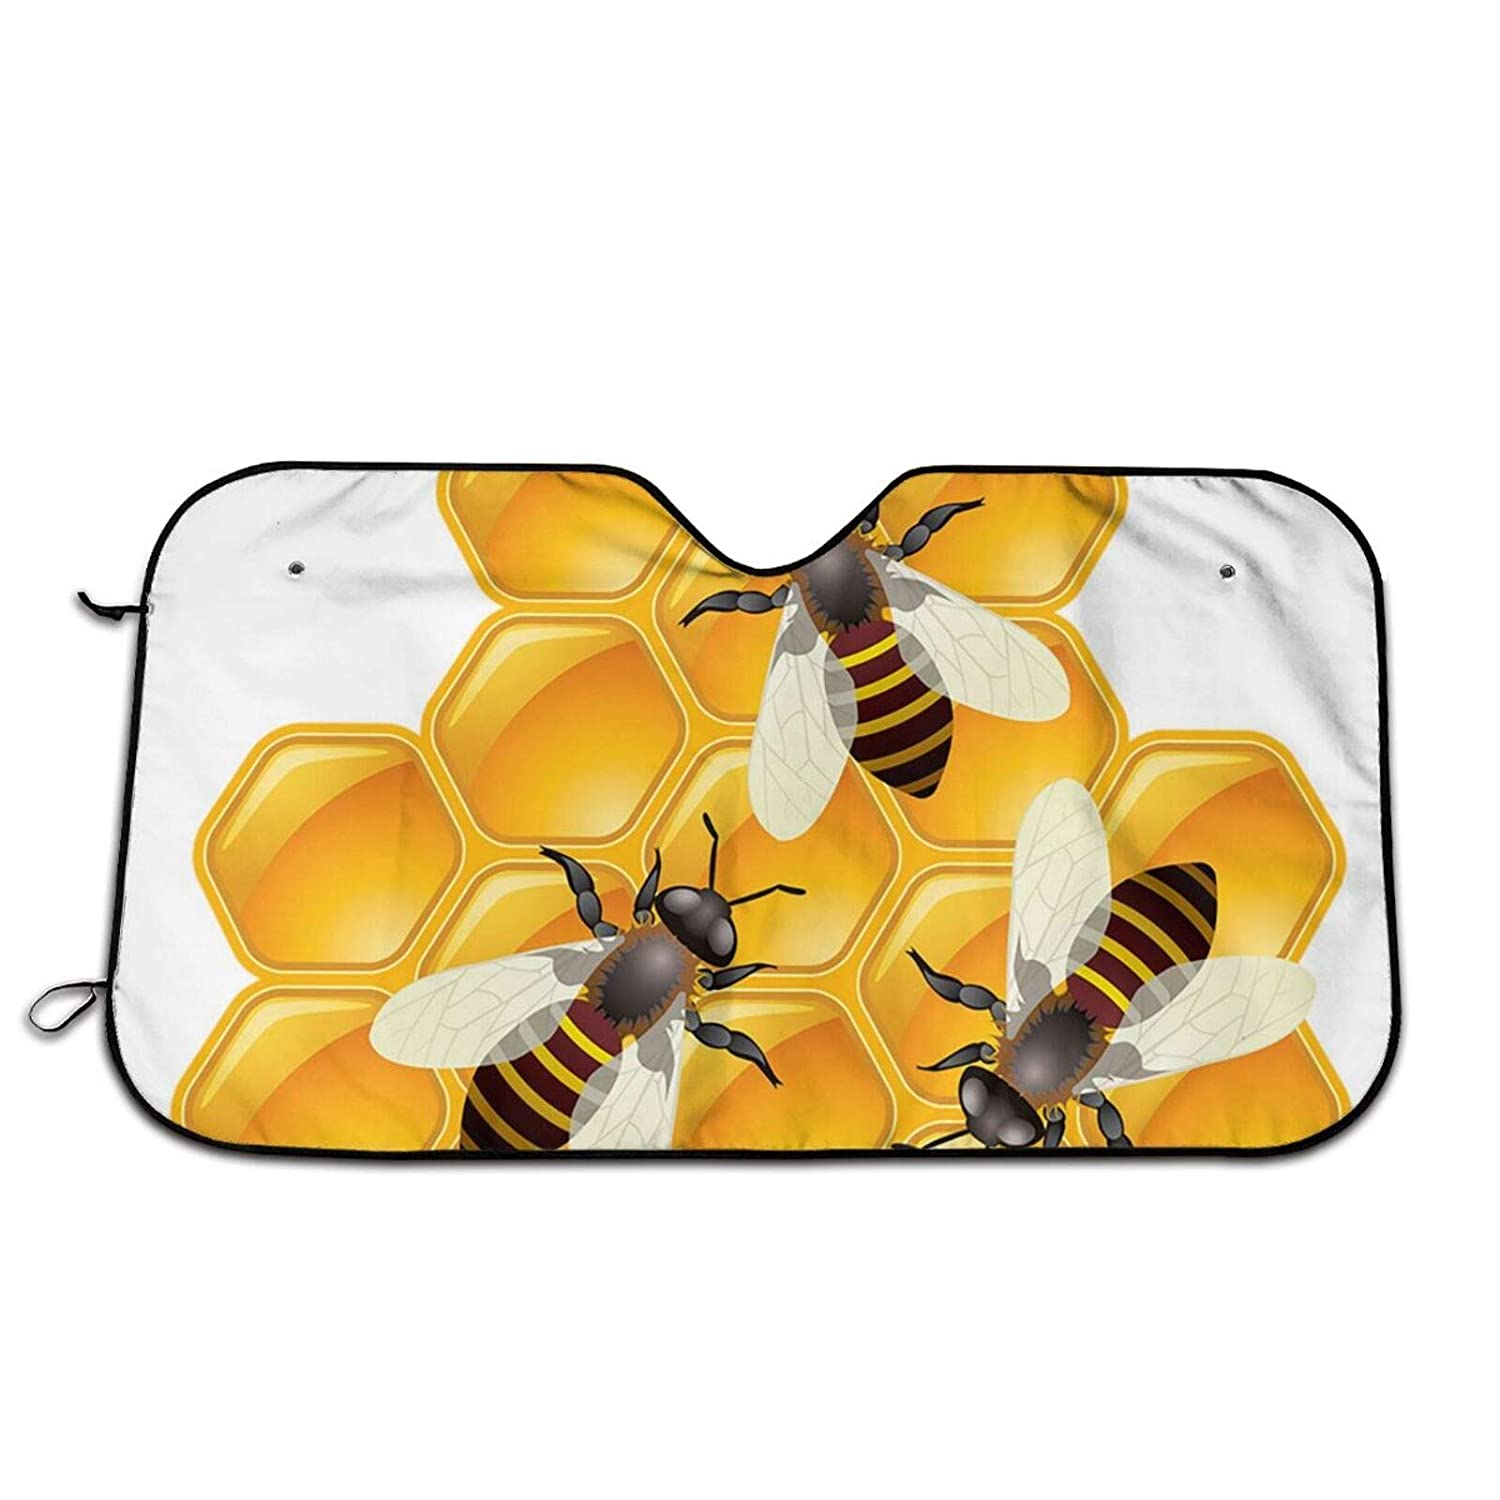 trust Durable Bees and Max 63% OFF Hives Car Sunshade-Kee Sun Windshield Shade